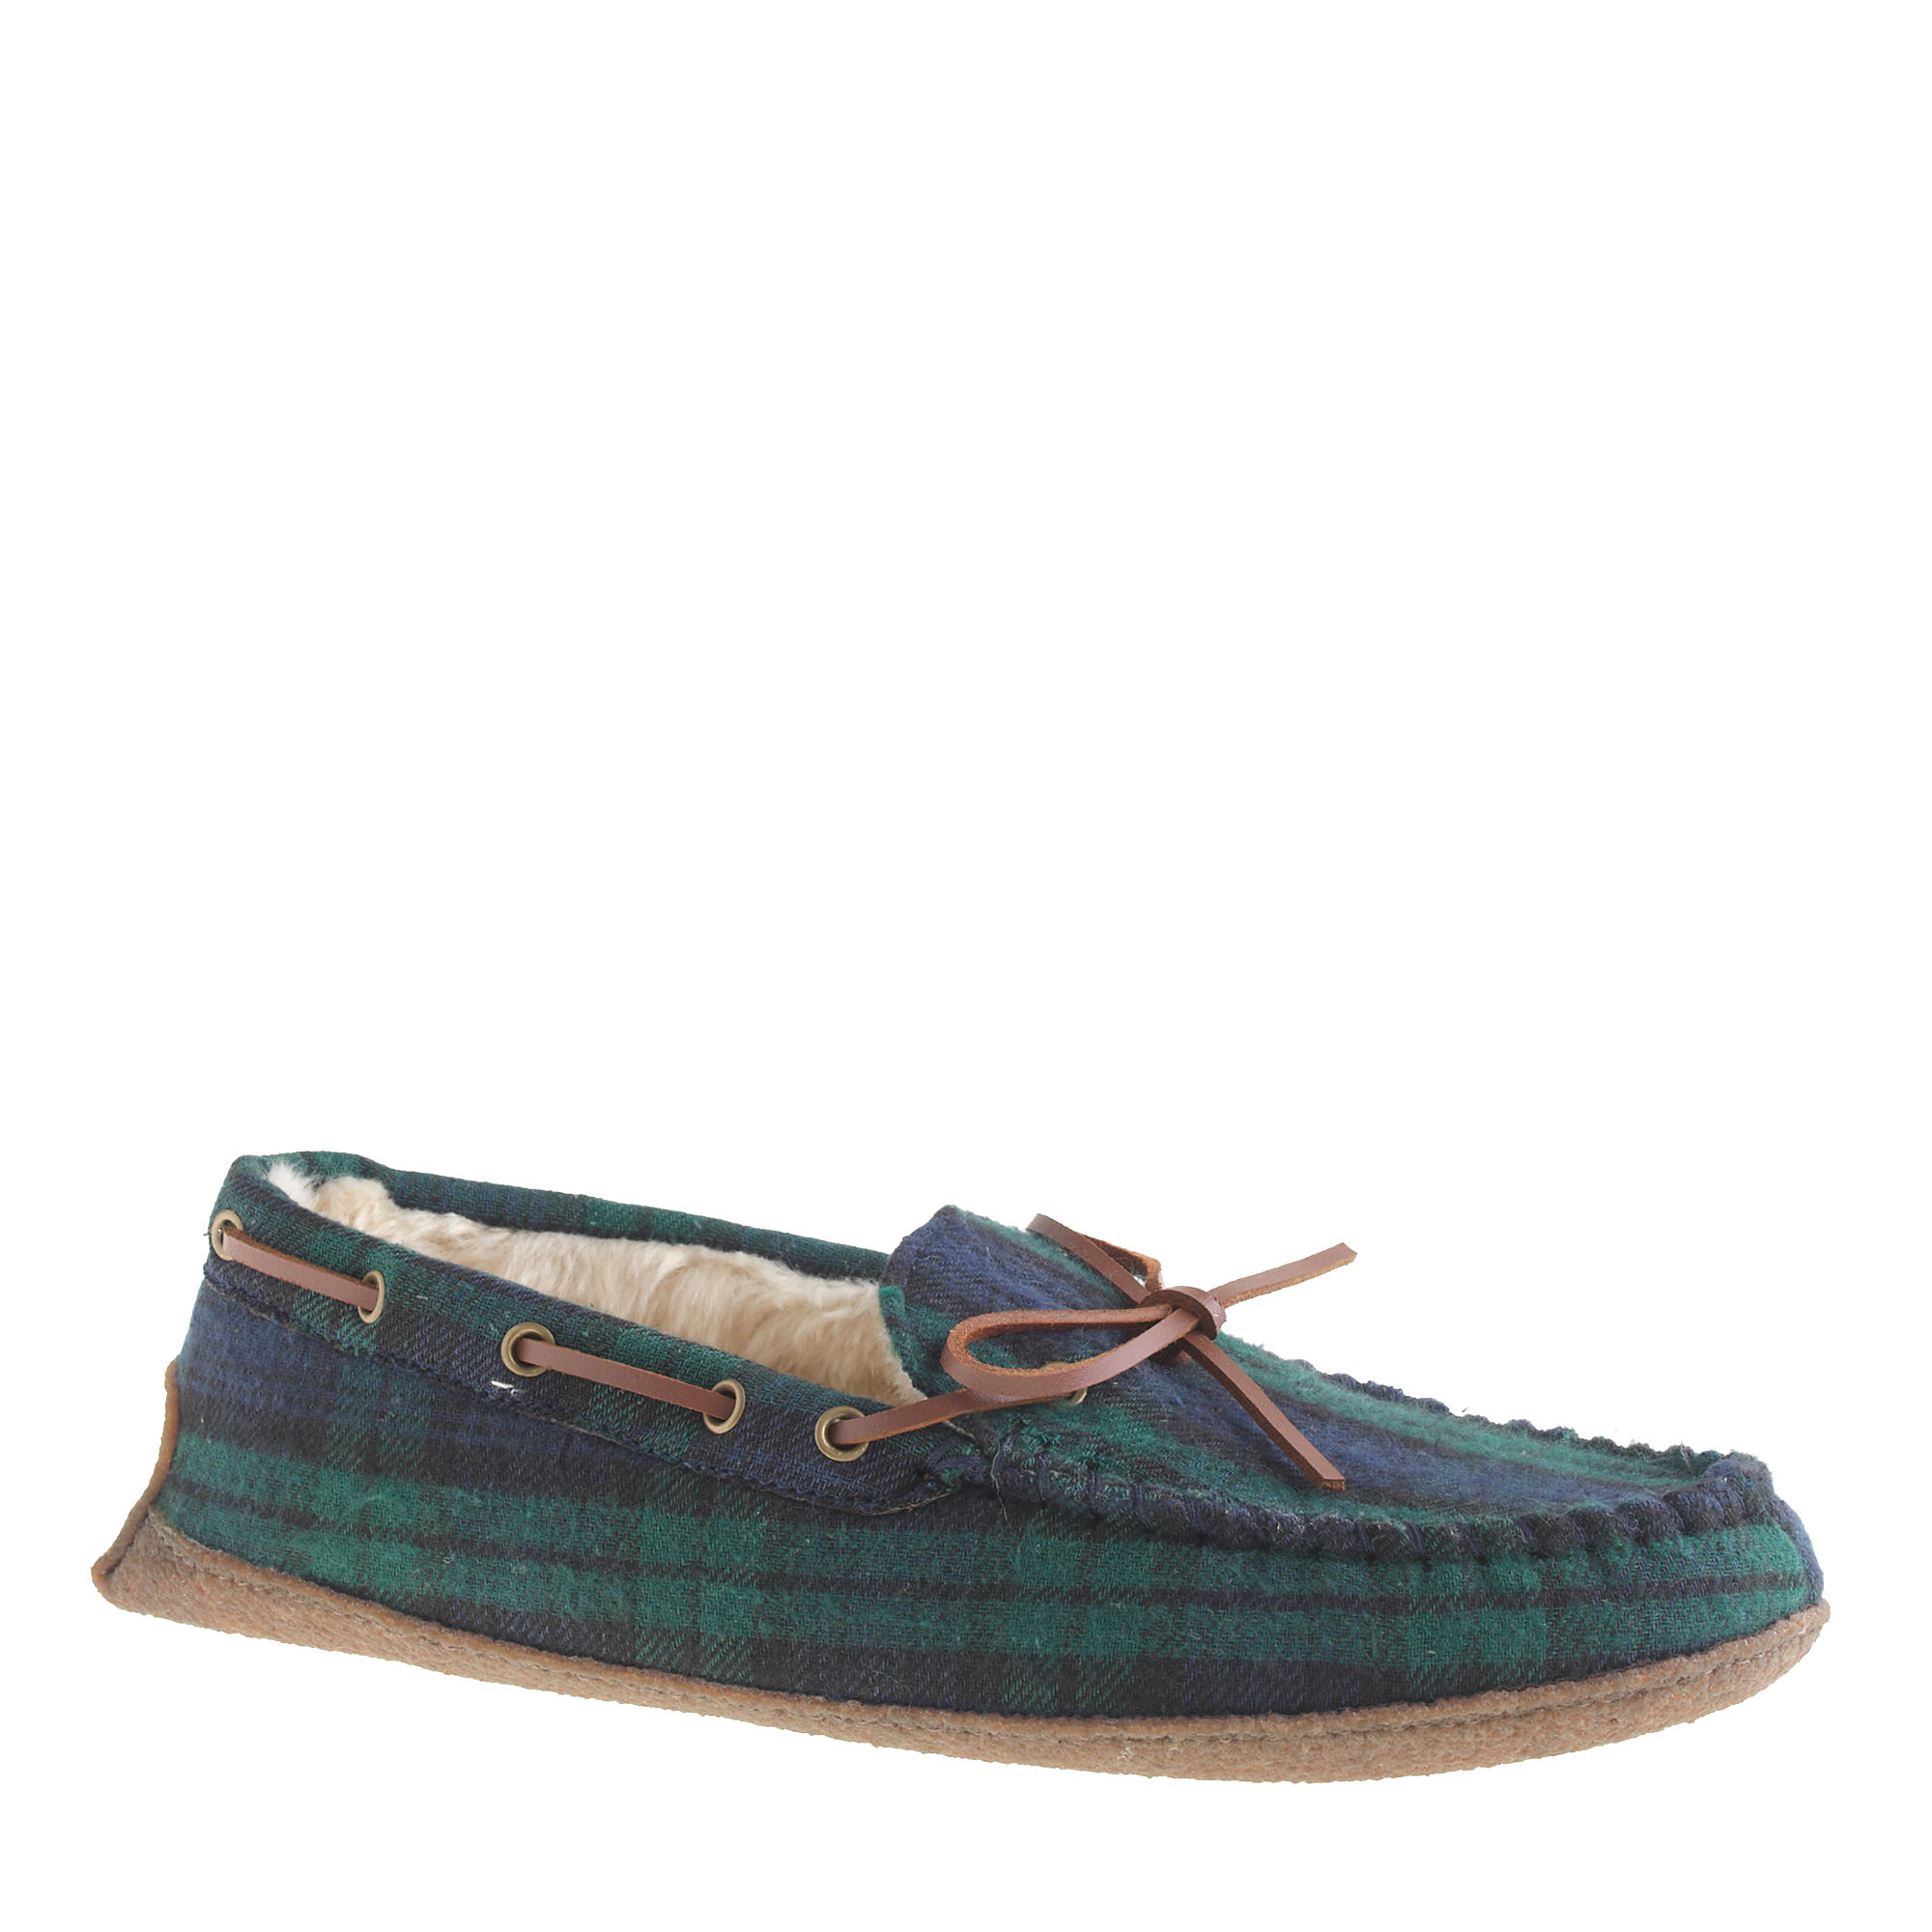 Shearling lined moccasins j crew for J crew bedroom slippers